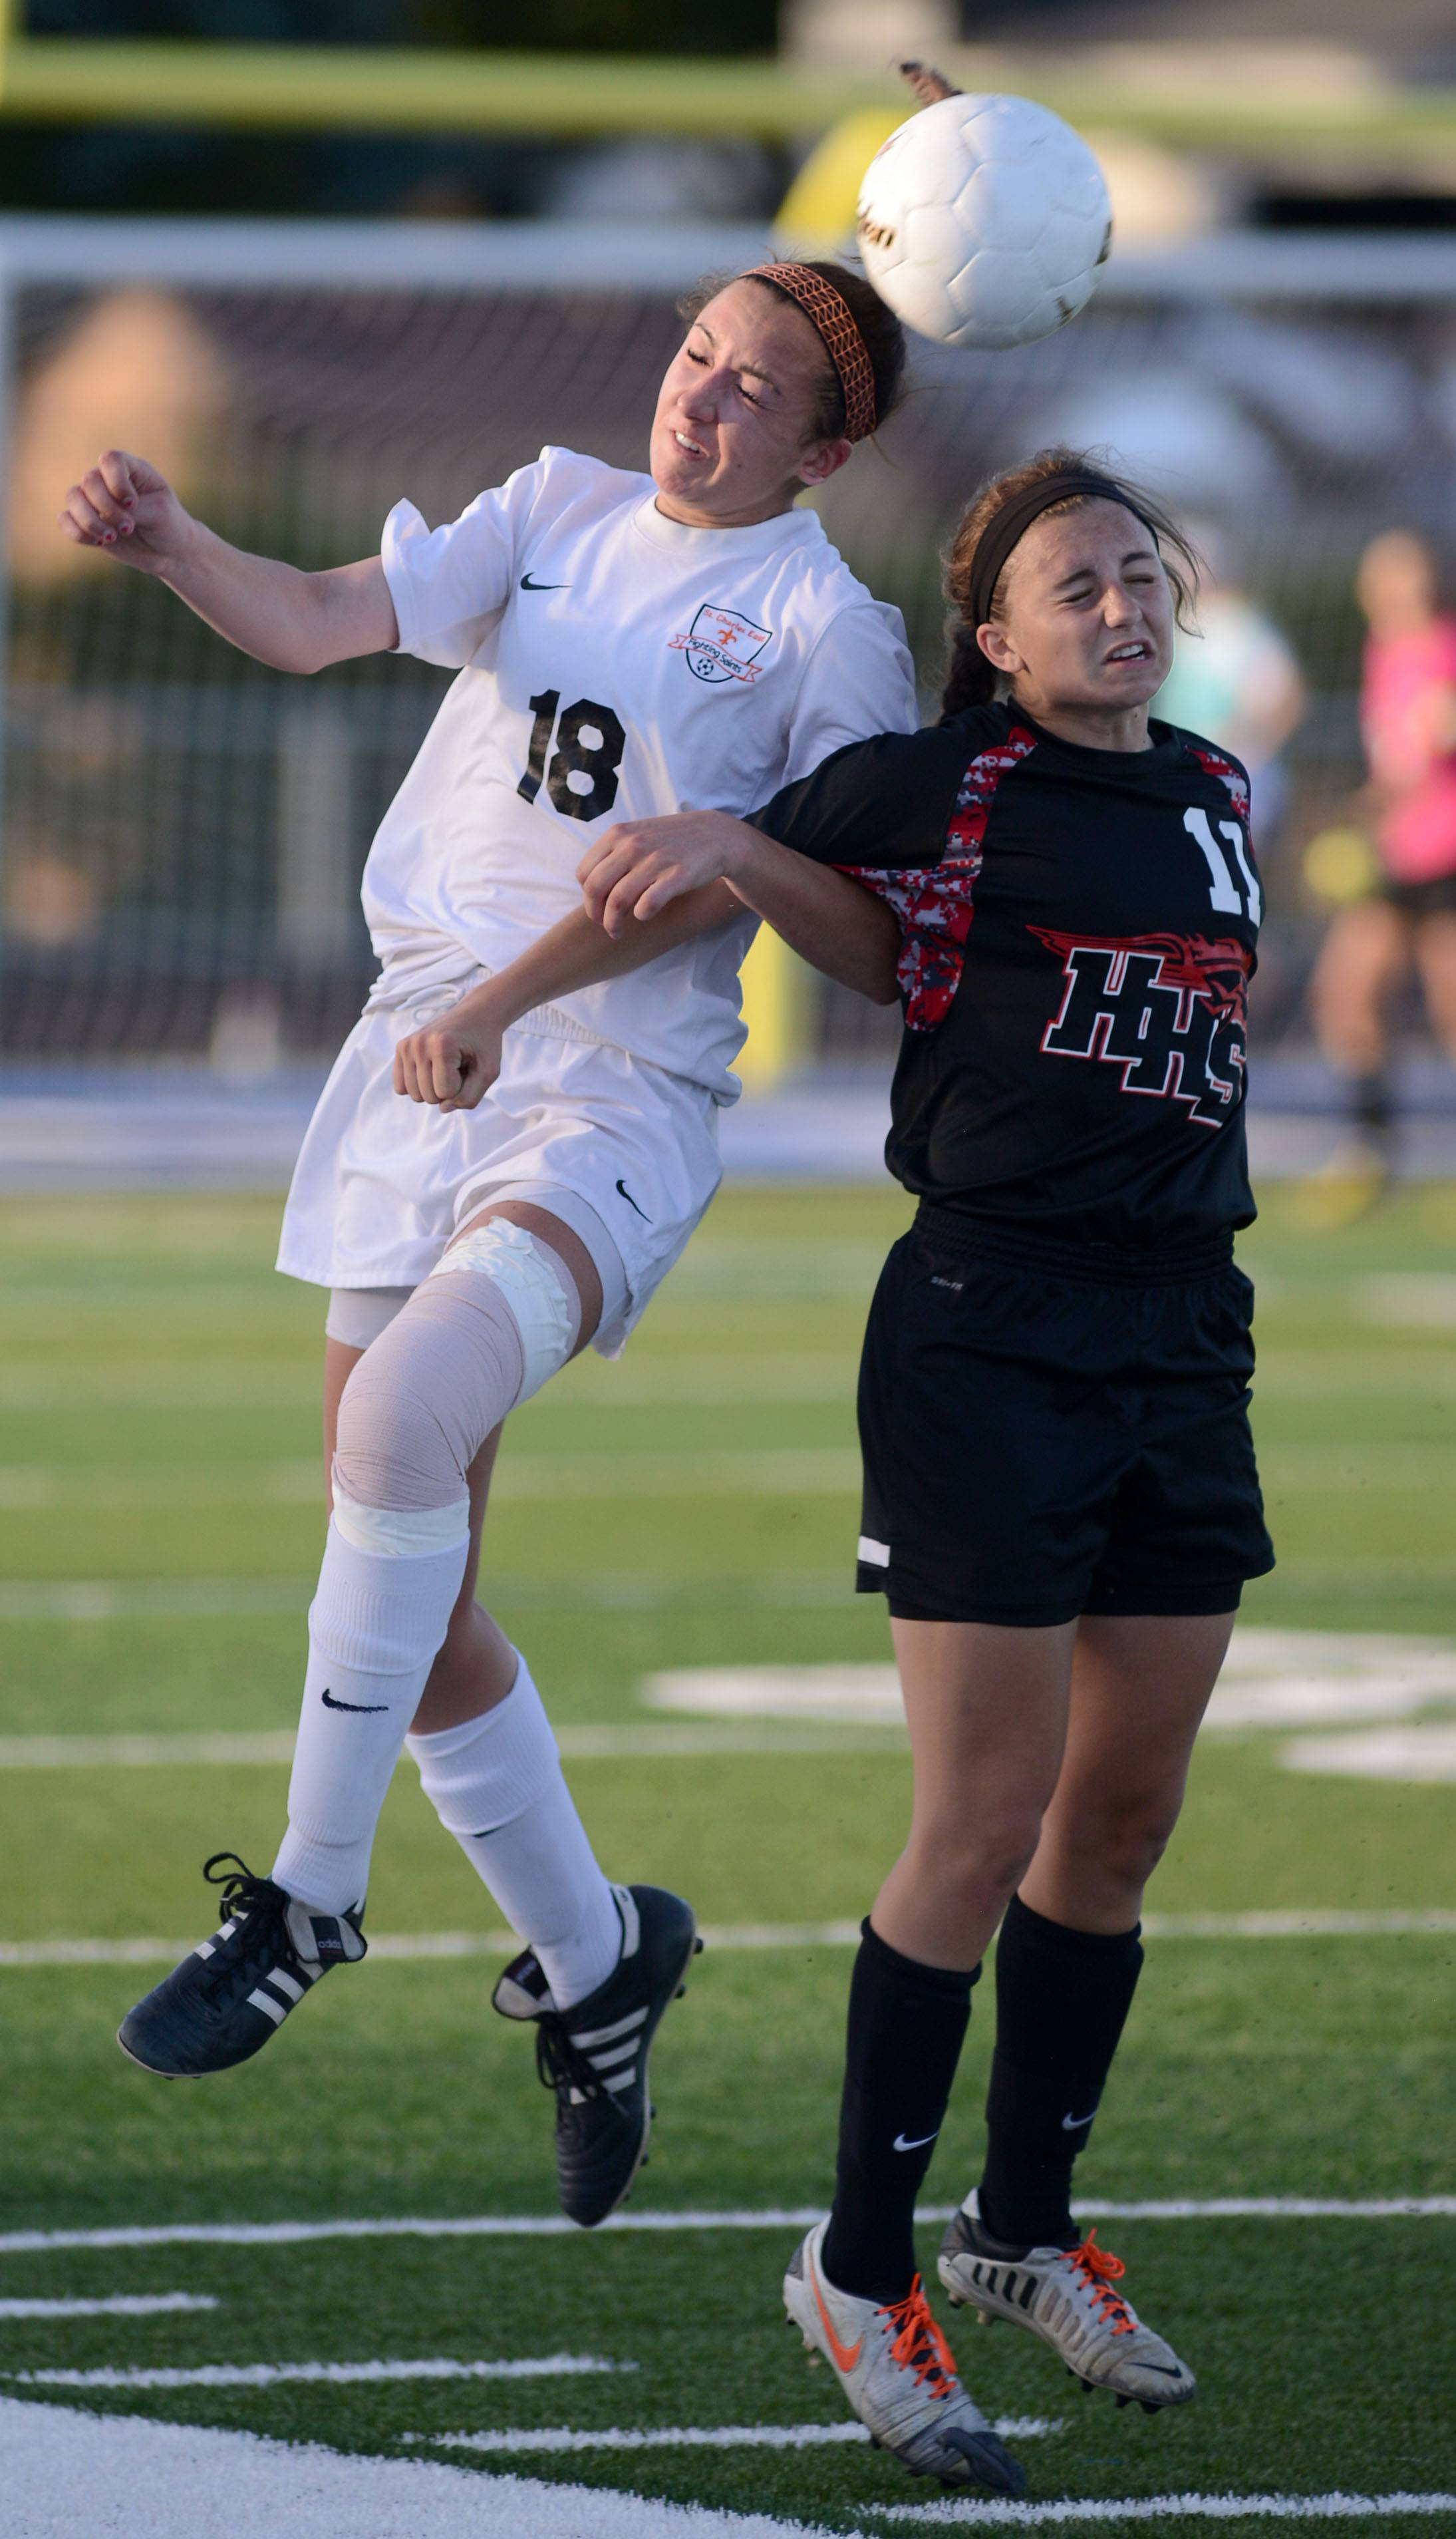 St. Charles East's Mallory Mollenhauer wins a header against Huntley's Taryn Jakubowski Tuesday.